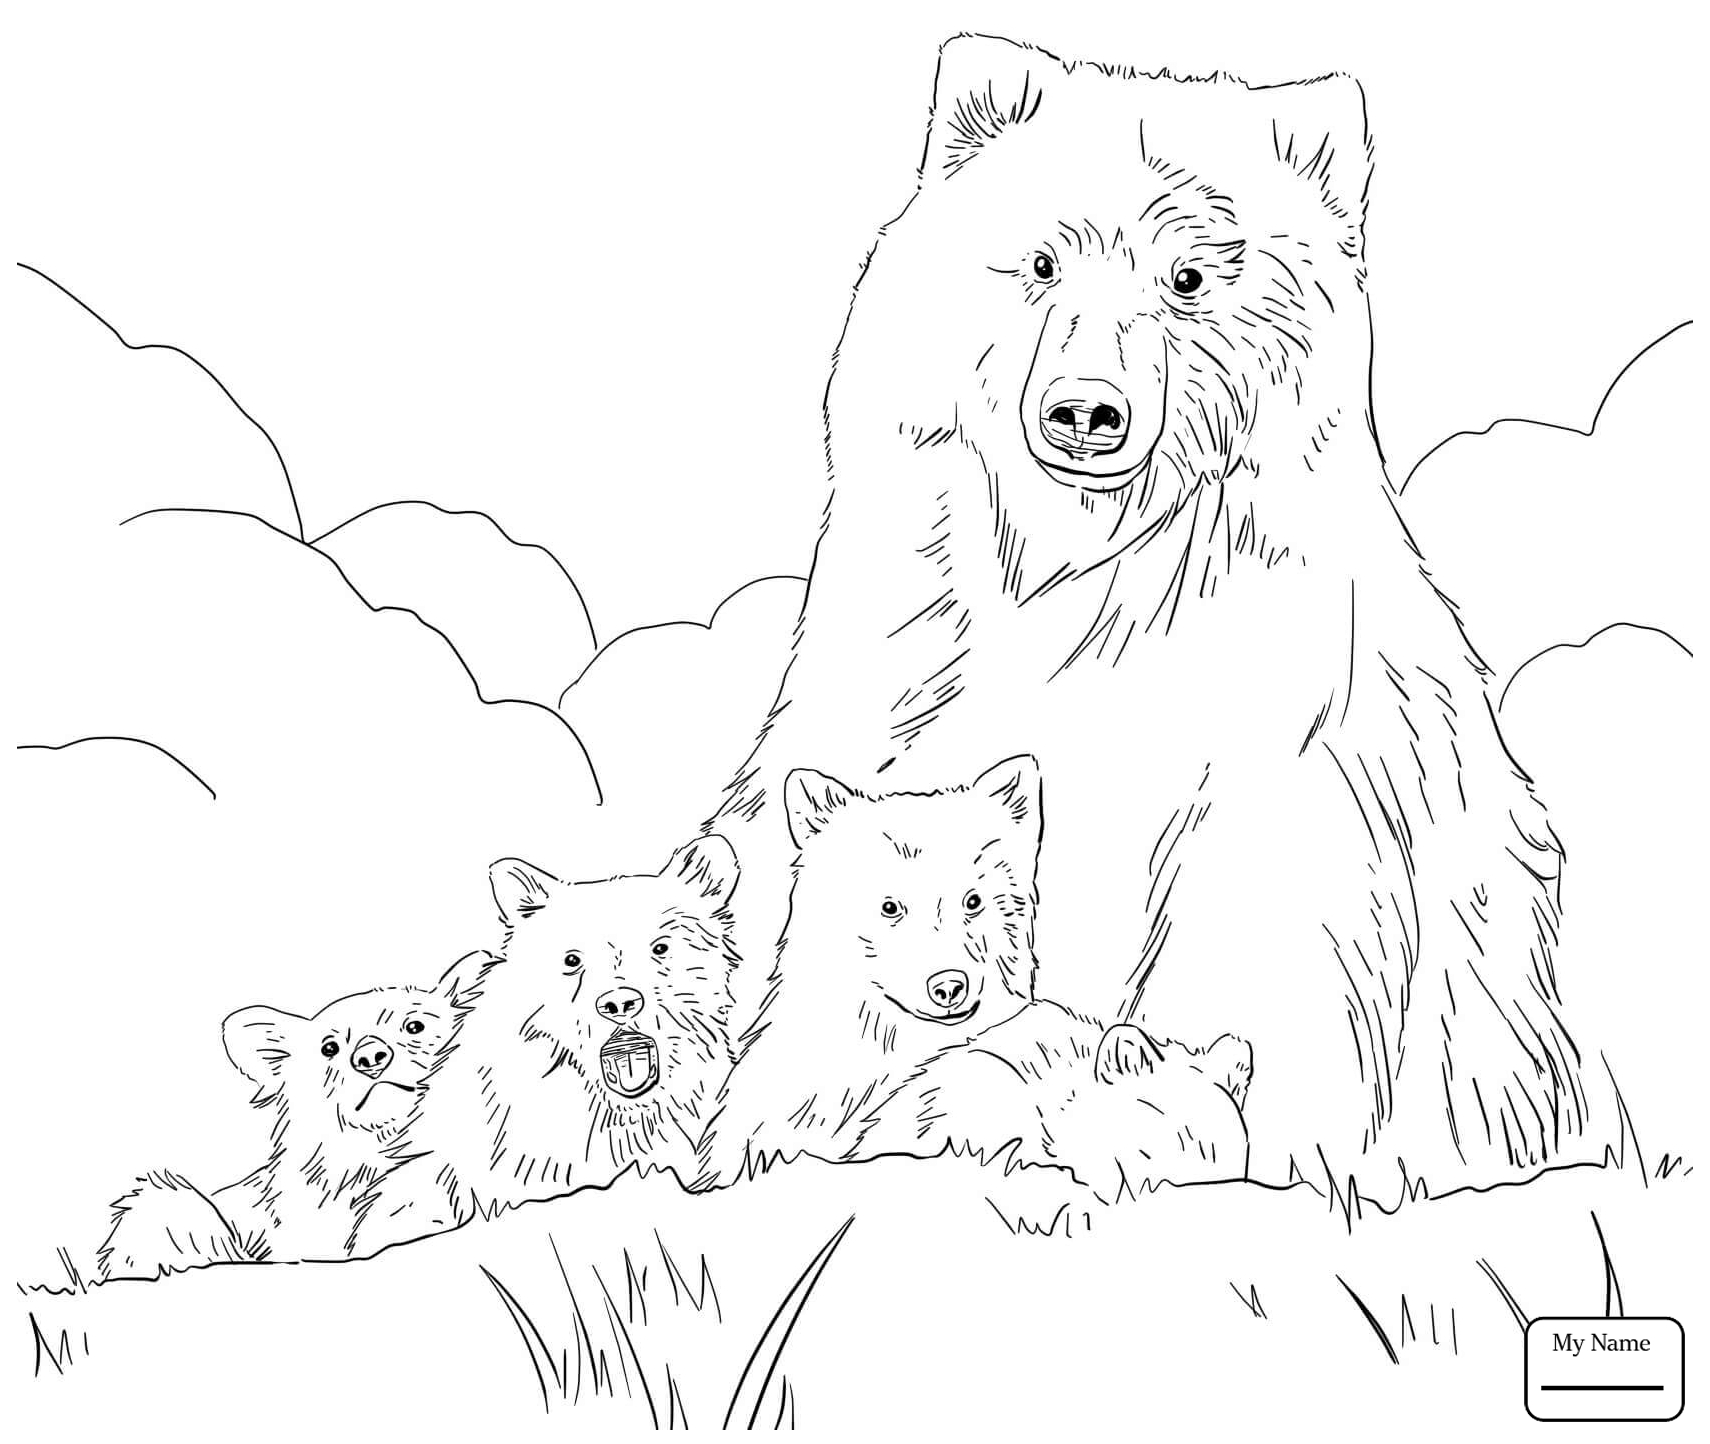 grizzly bear drawing step by step grizzly bear drawing step by step at getdrawings free grizzly by step bear step drawing